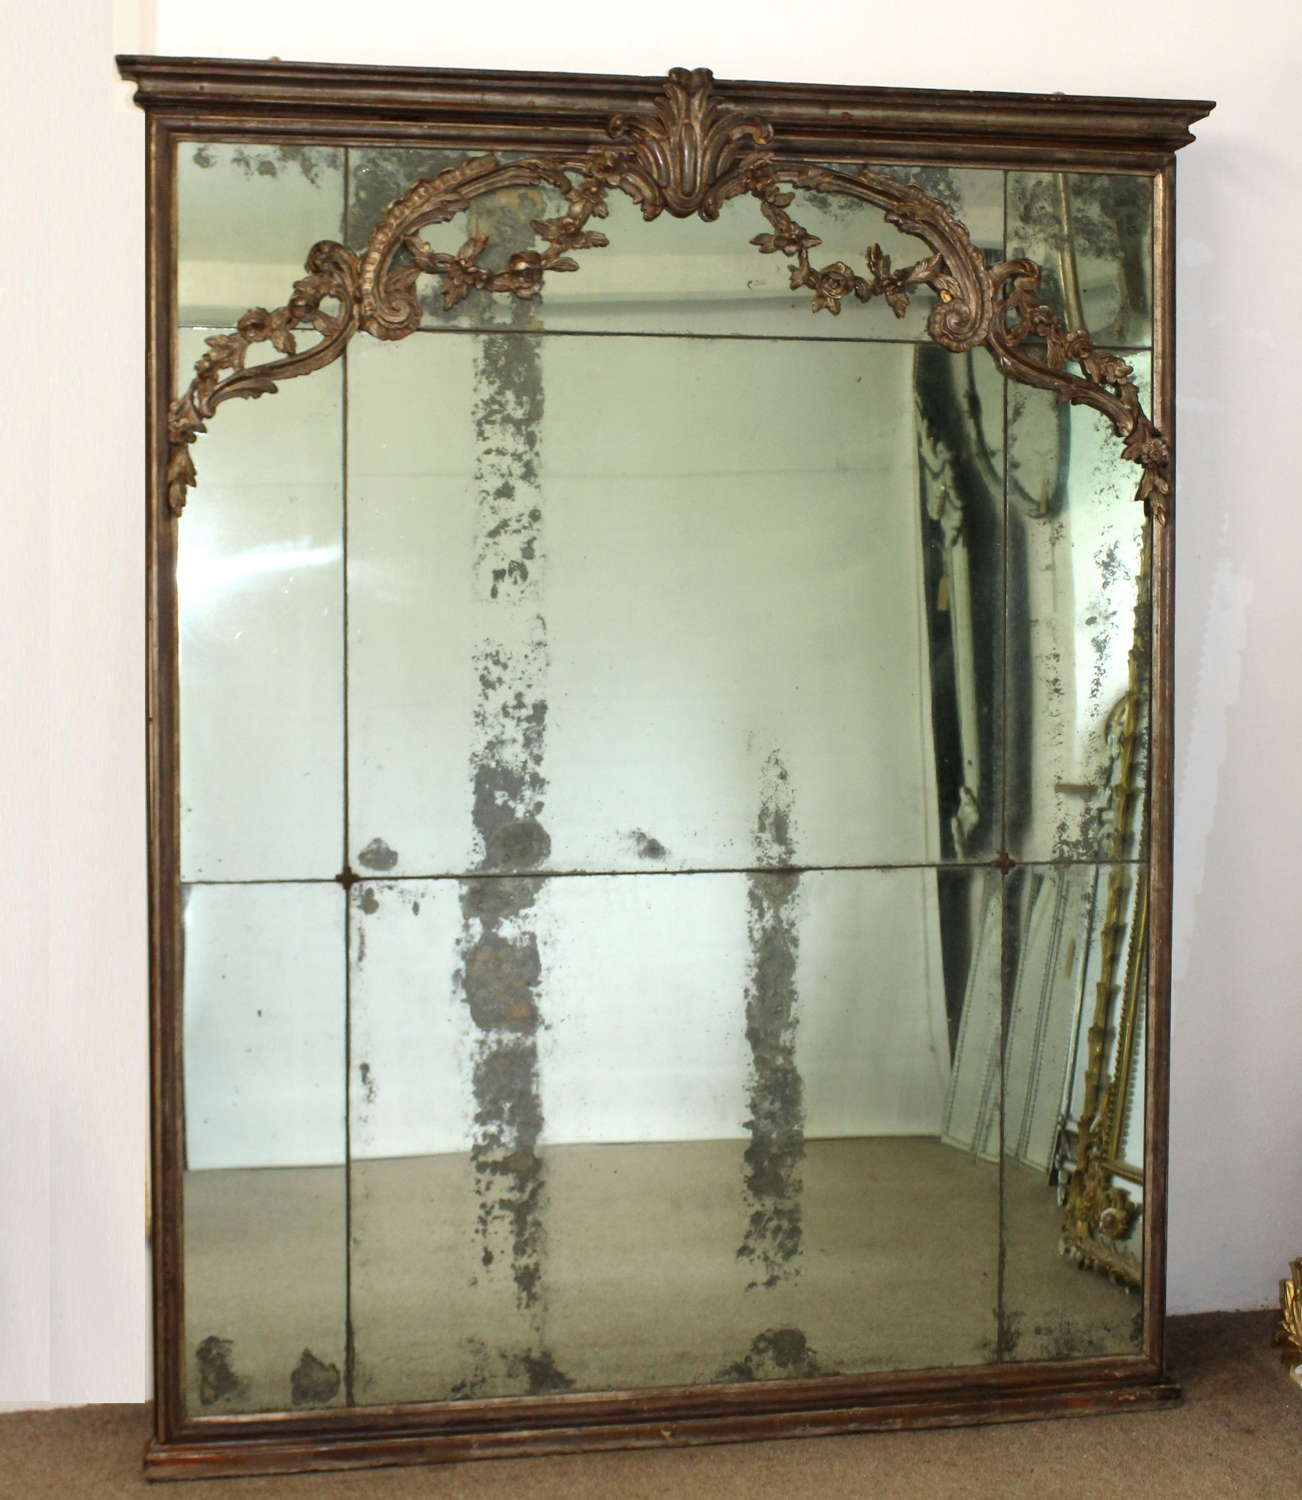 18th century Italian mirror with sectioned glass